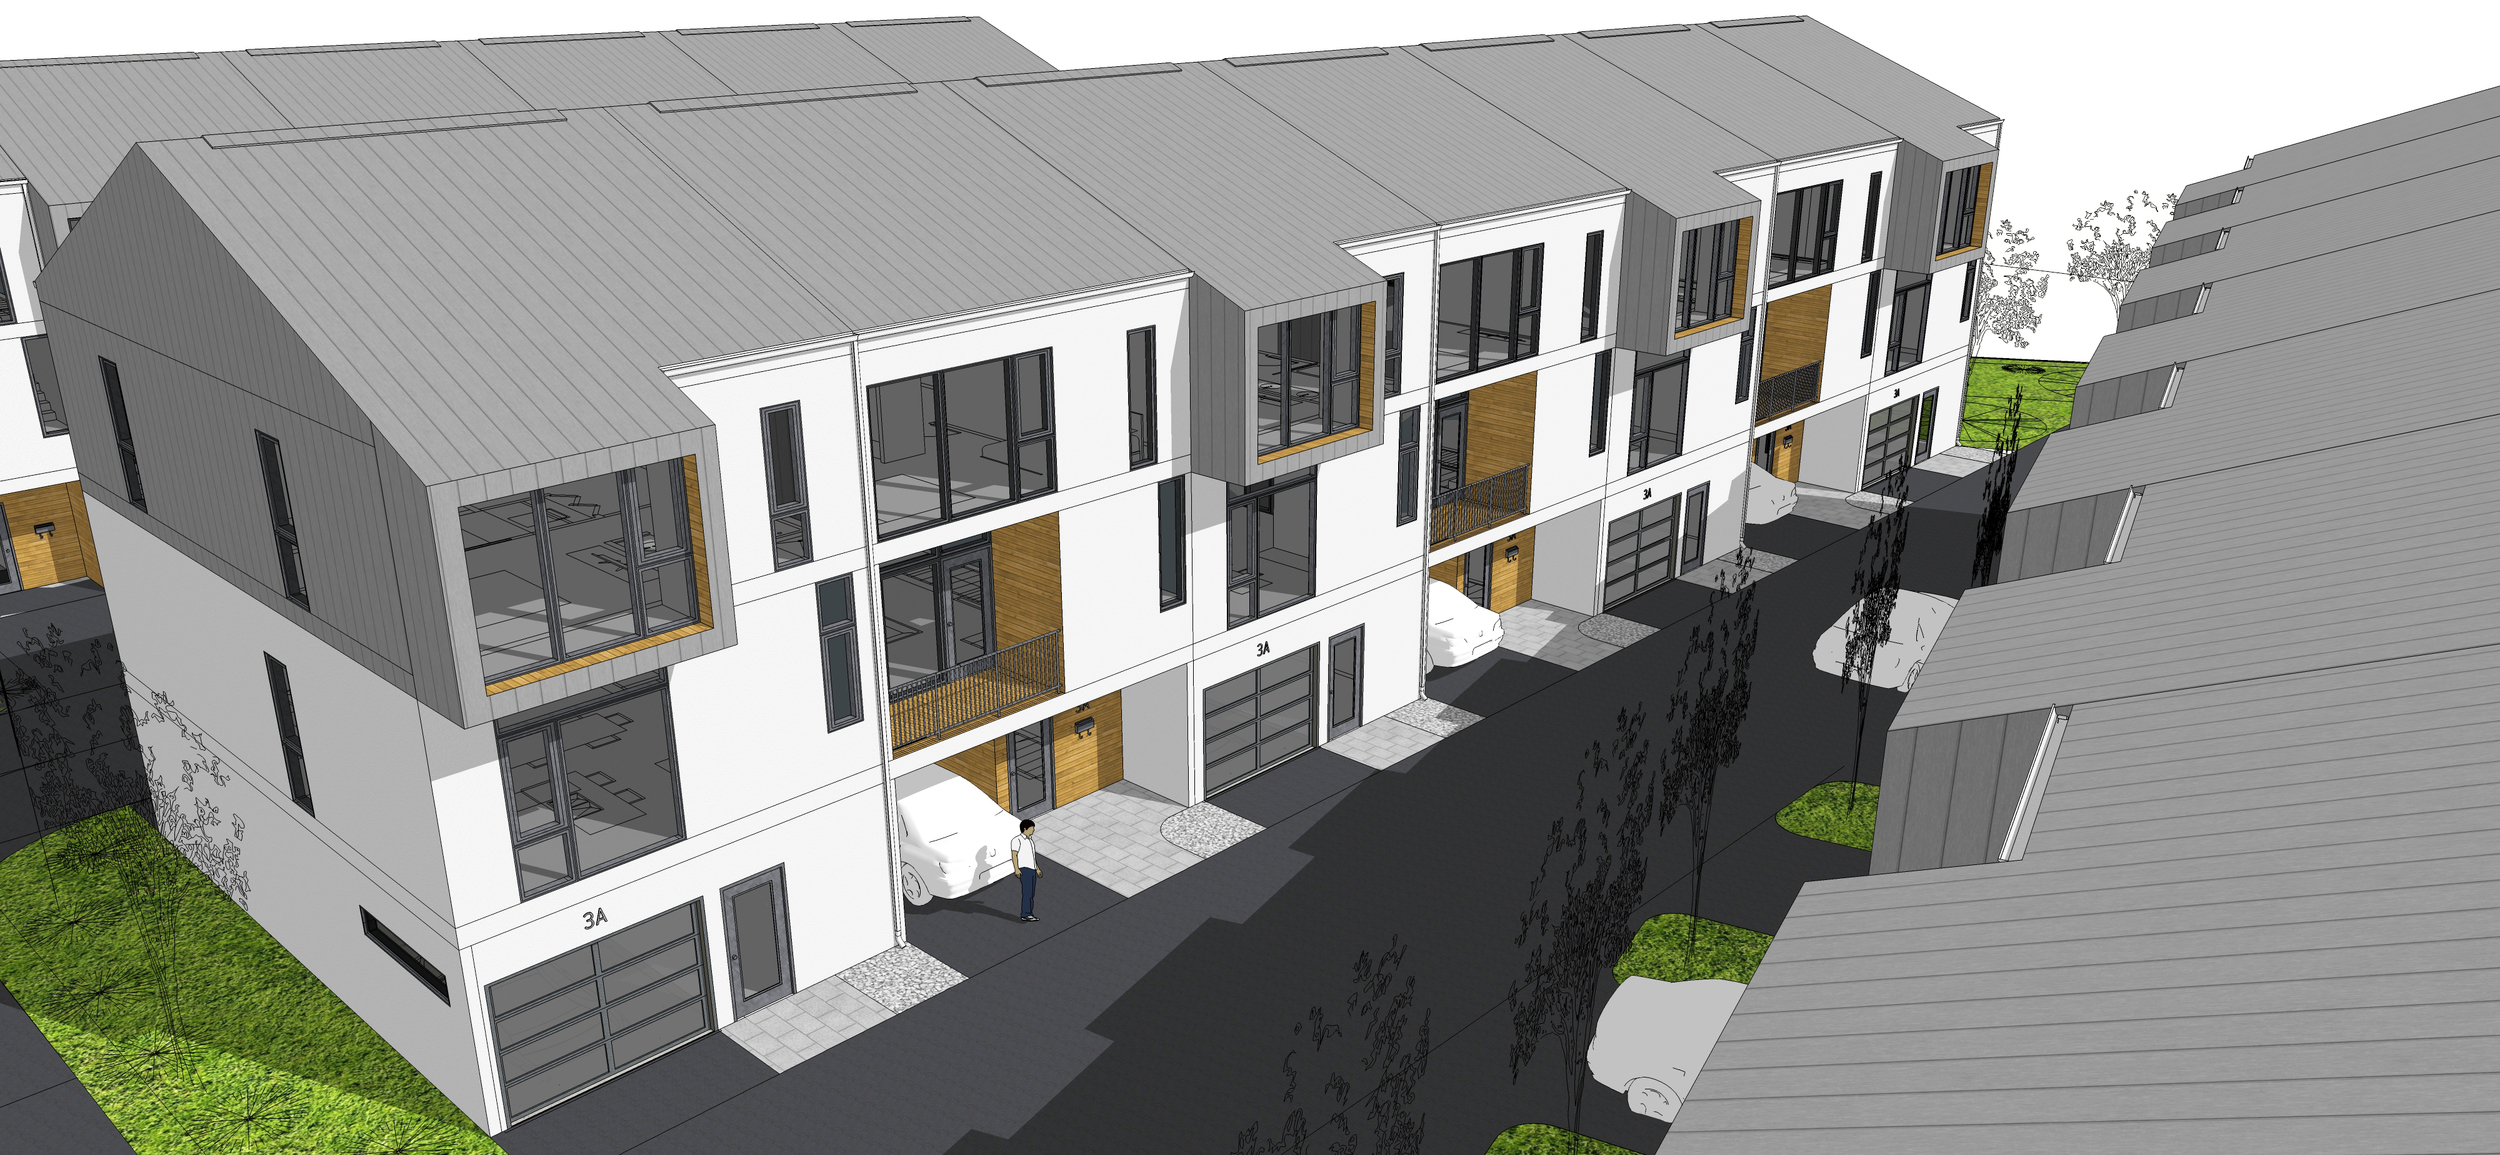 2013_12_Townhouses_perspective-3.jpg